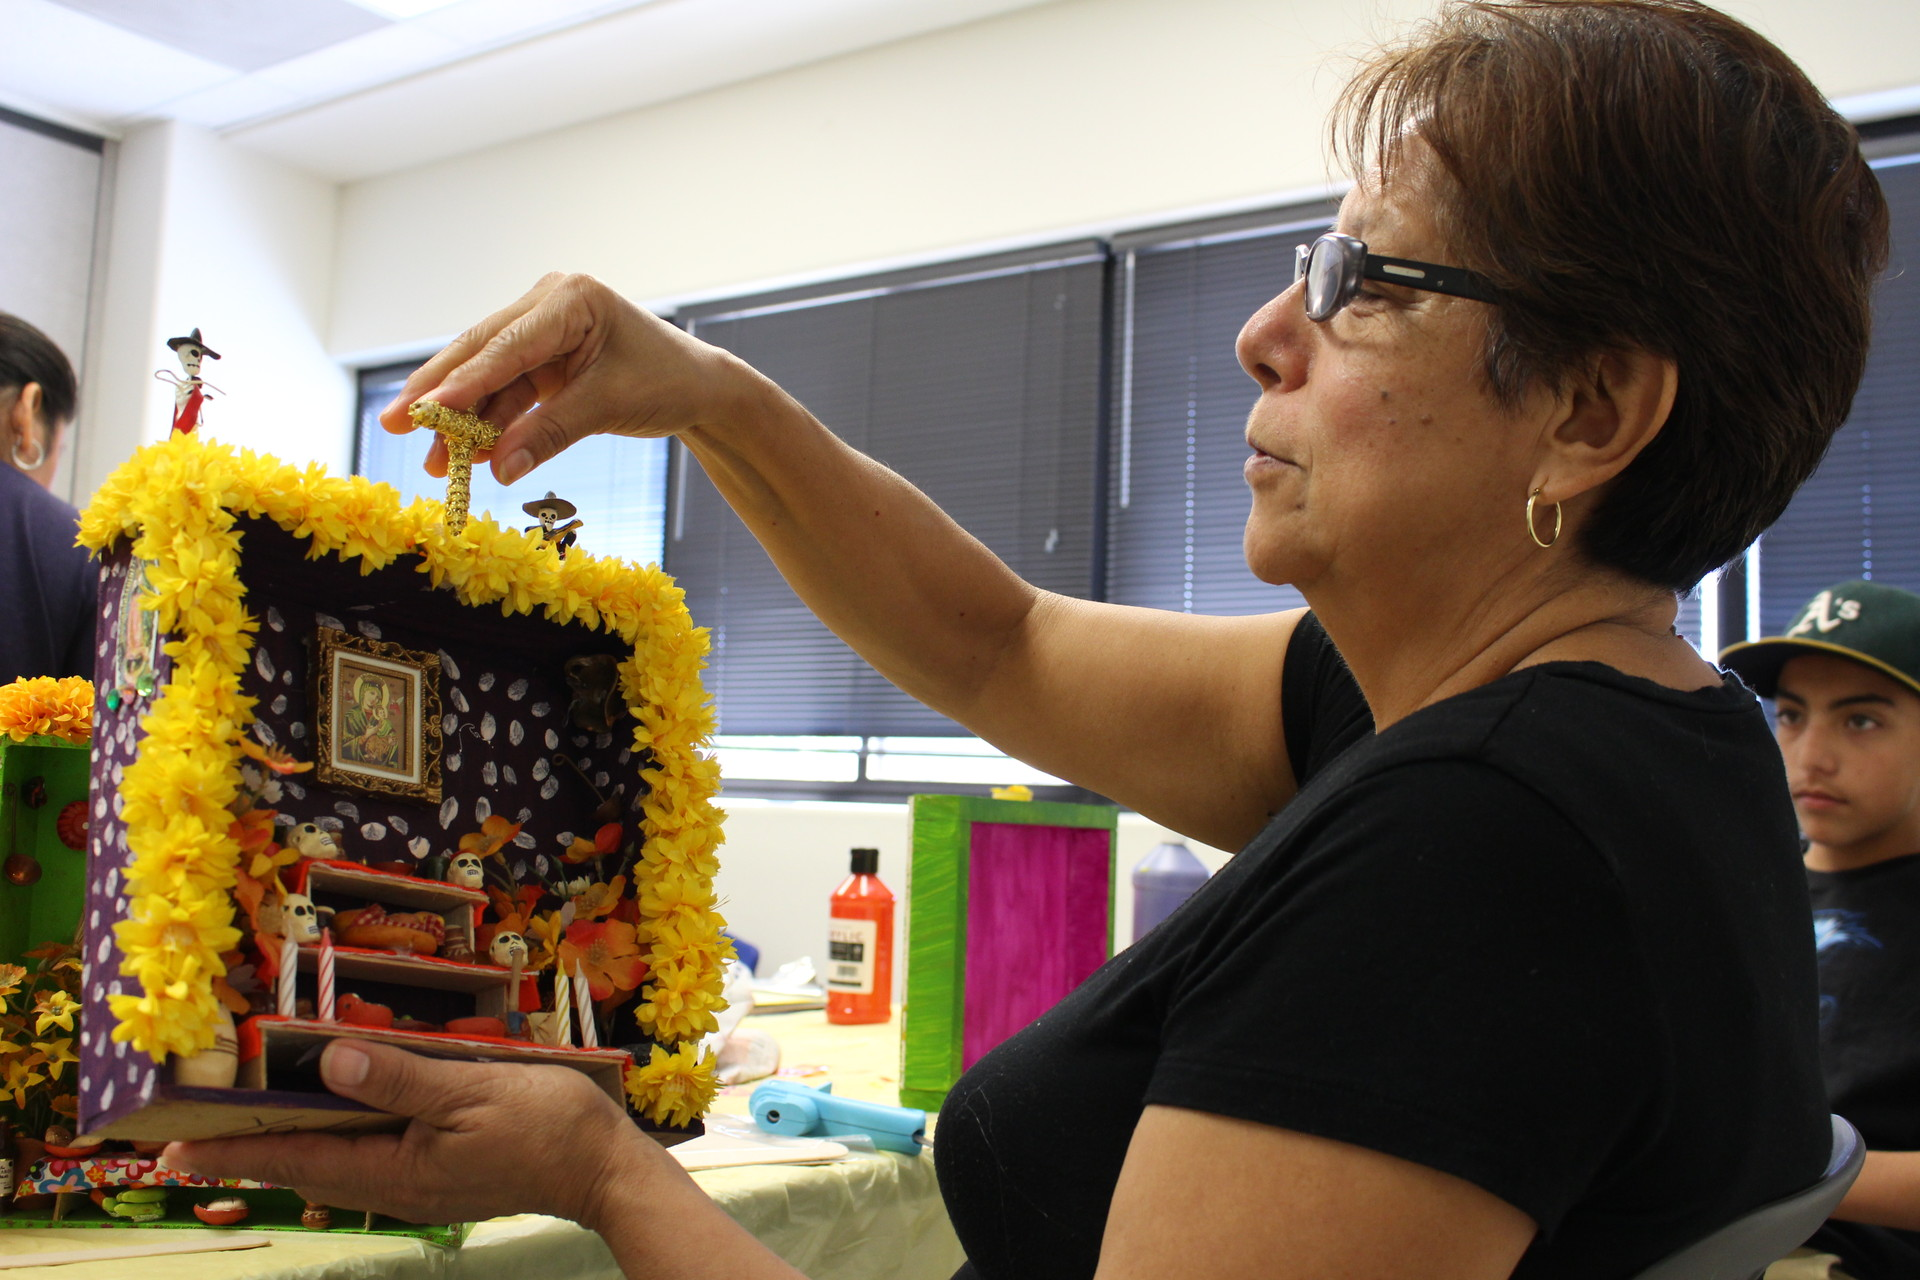 Yolanda Tell shows off a nicho she made for her daughter, as grandson Victor Hugo Perez looks on. Tell's daugher died in a car accident when Perez was 3 years old. Tell takes care of him and his brother.